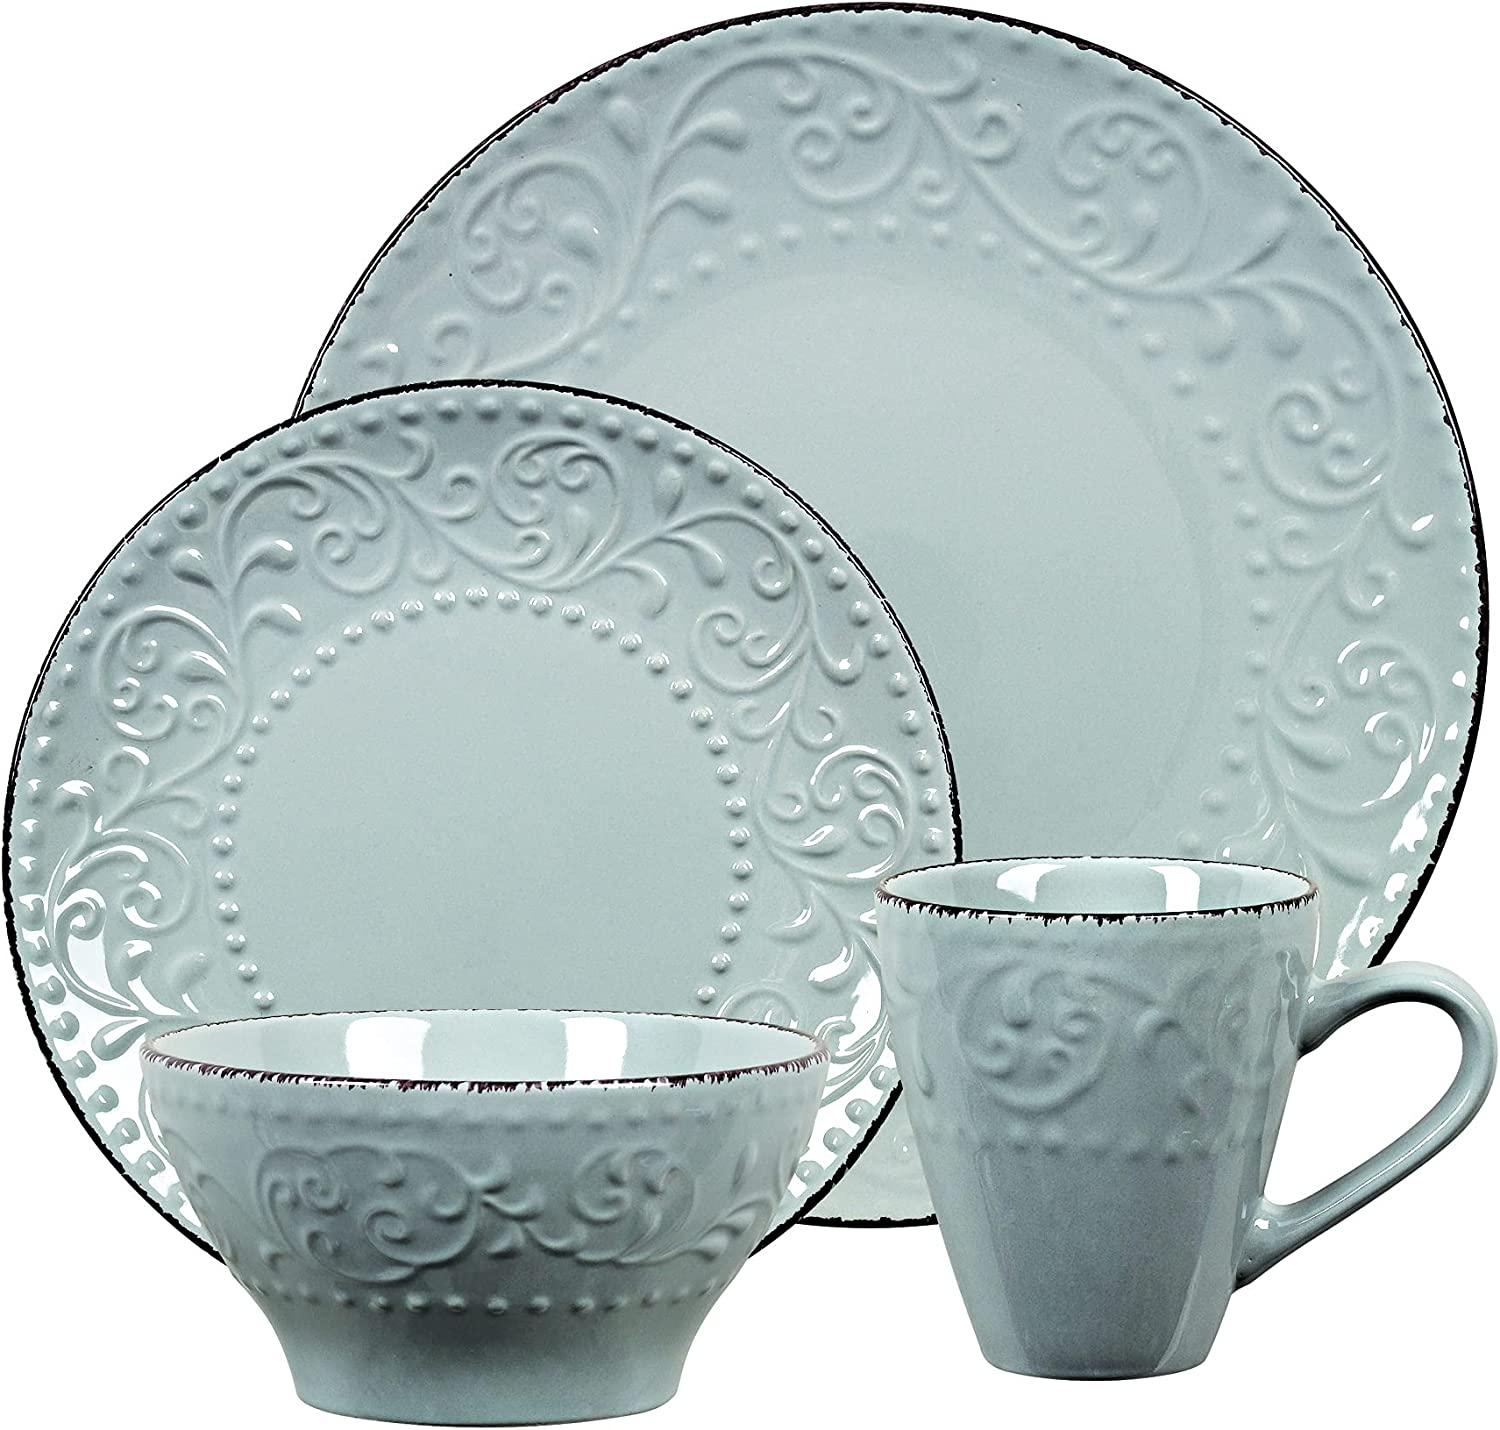 Lorren Home Trends LH527 Dinnerware Set for Entertaining, One Size, Gray